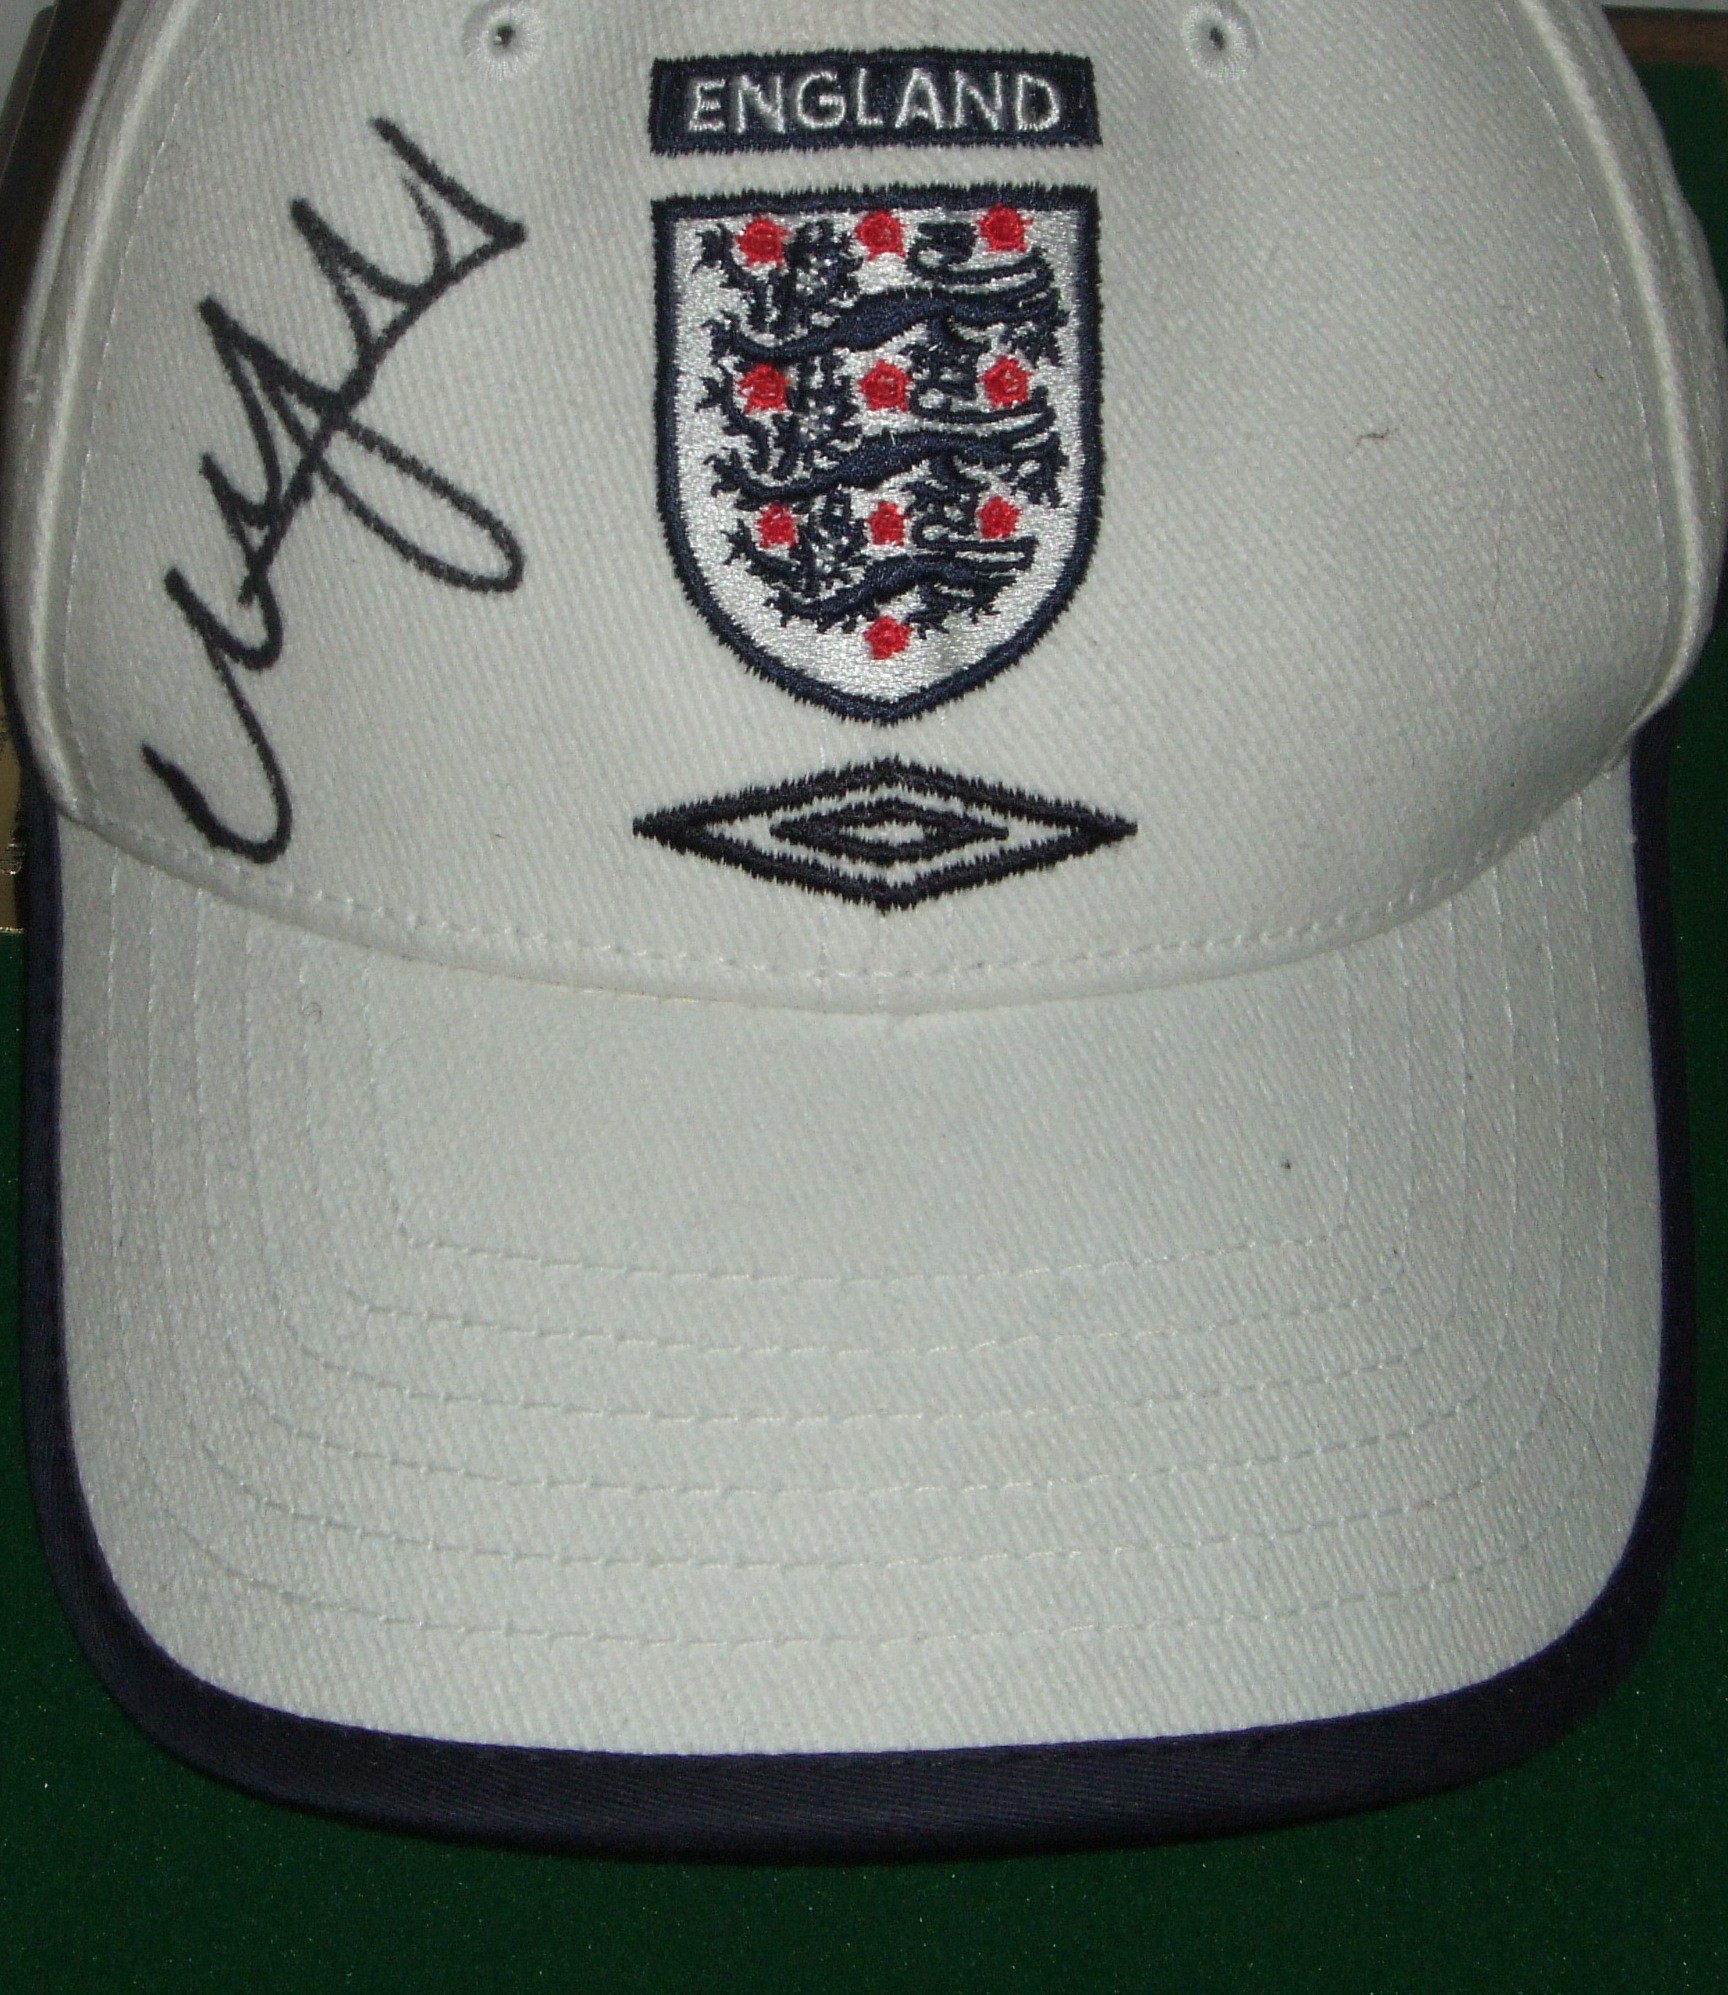 Nicky Butt Signed England Cap